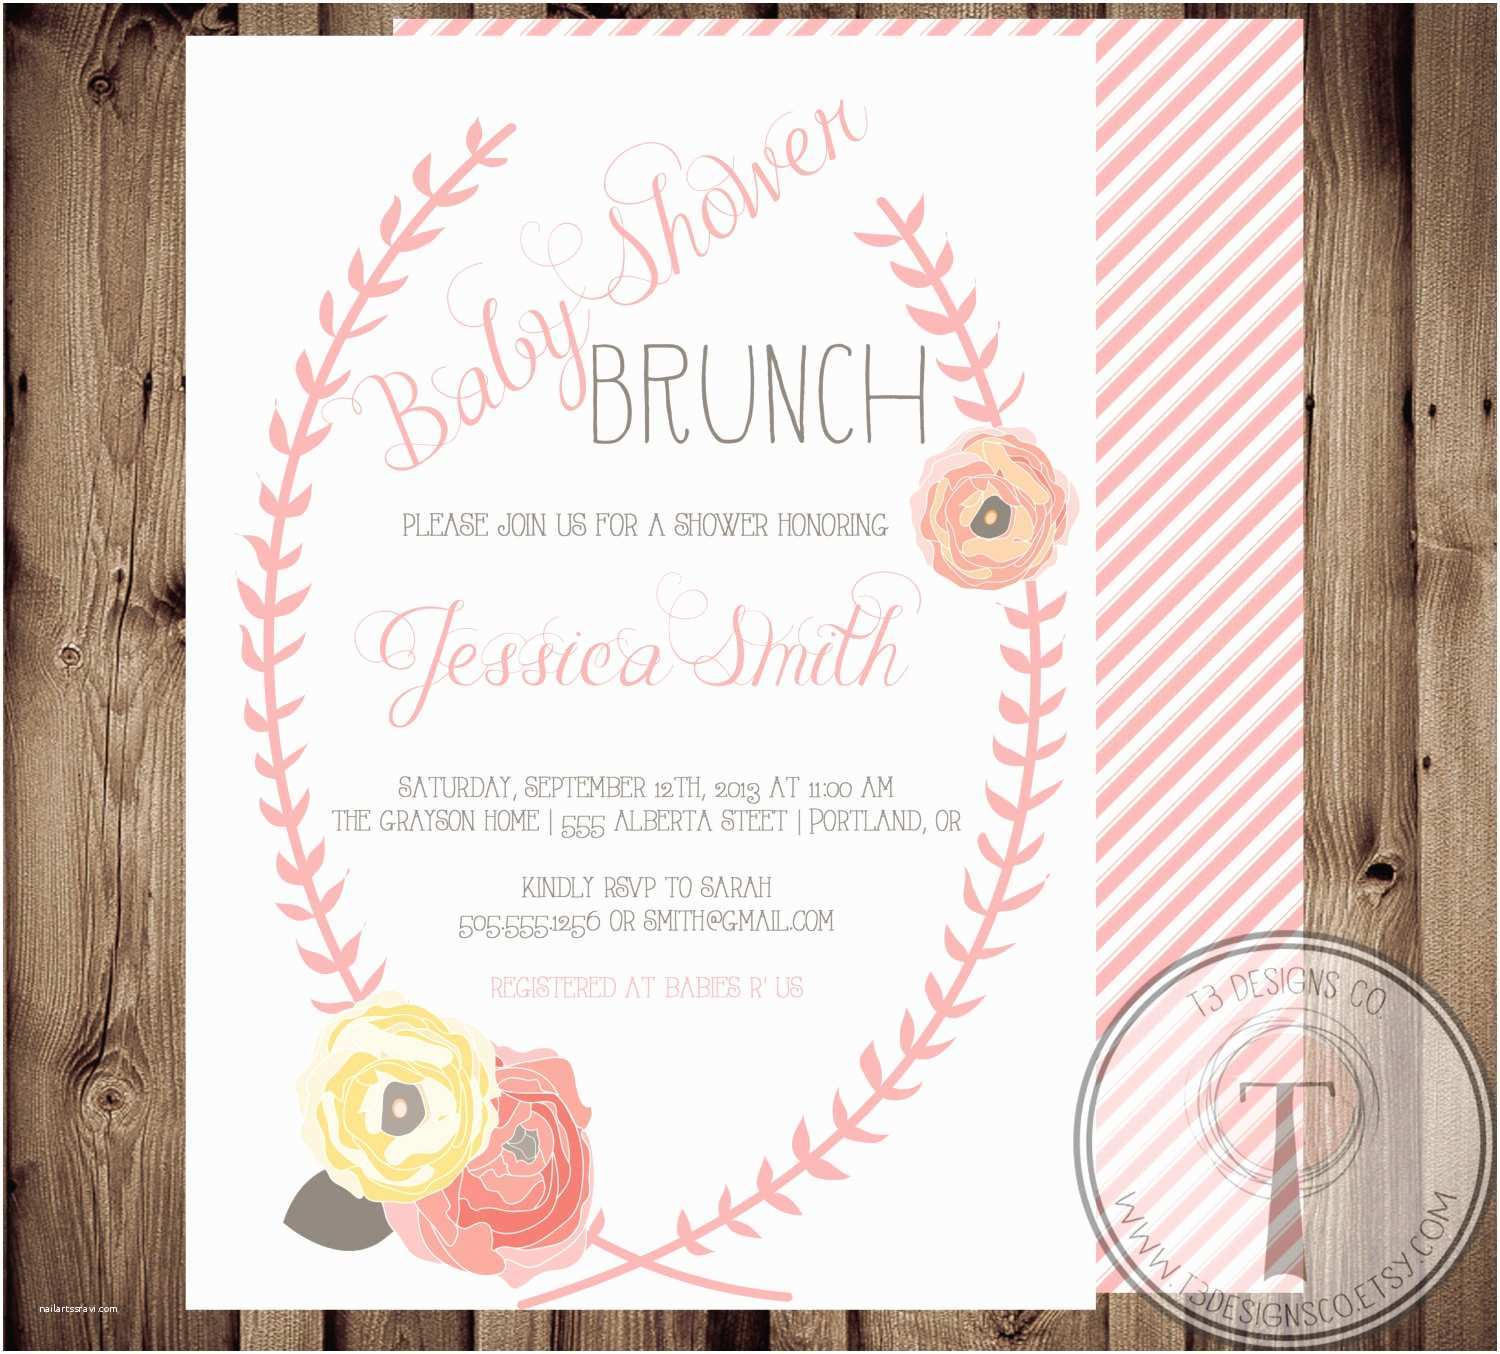 Vintage Baby Shower Invitations Vintage Floral Baby Shower Invitation Baby Shower